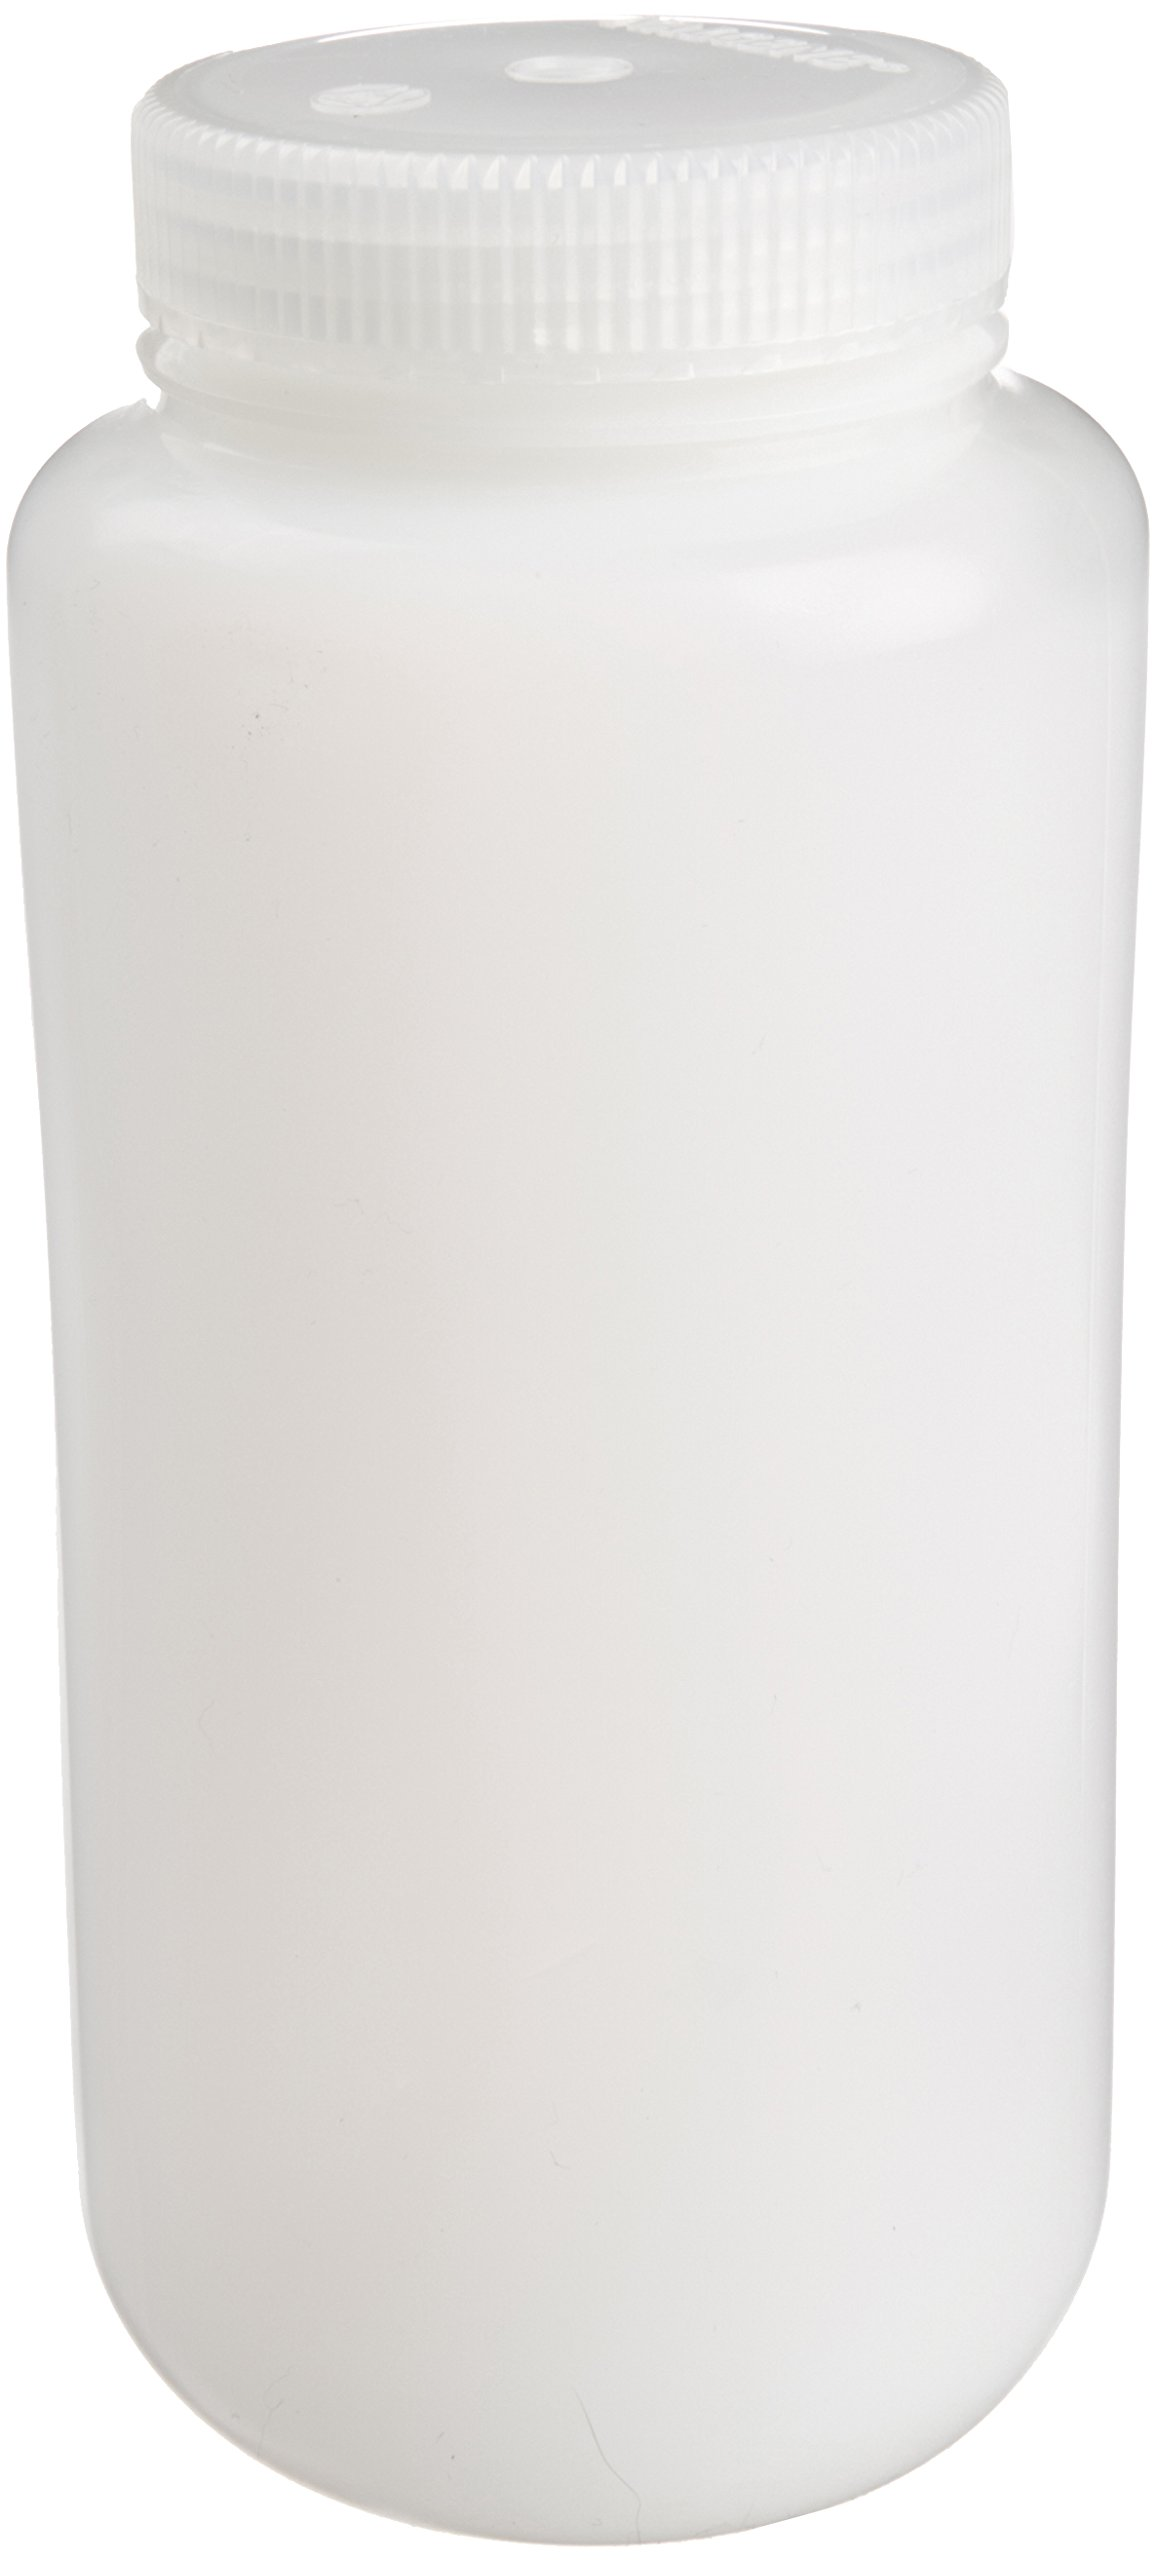 Nalgene 2197-0032 FEP Wide Mouth Bottles with Fluorinated Polypropylene Screw Closures, 1000ml Capacity (Case of 24)